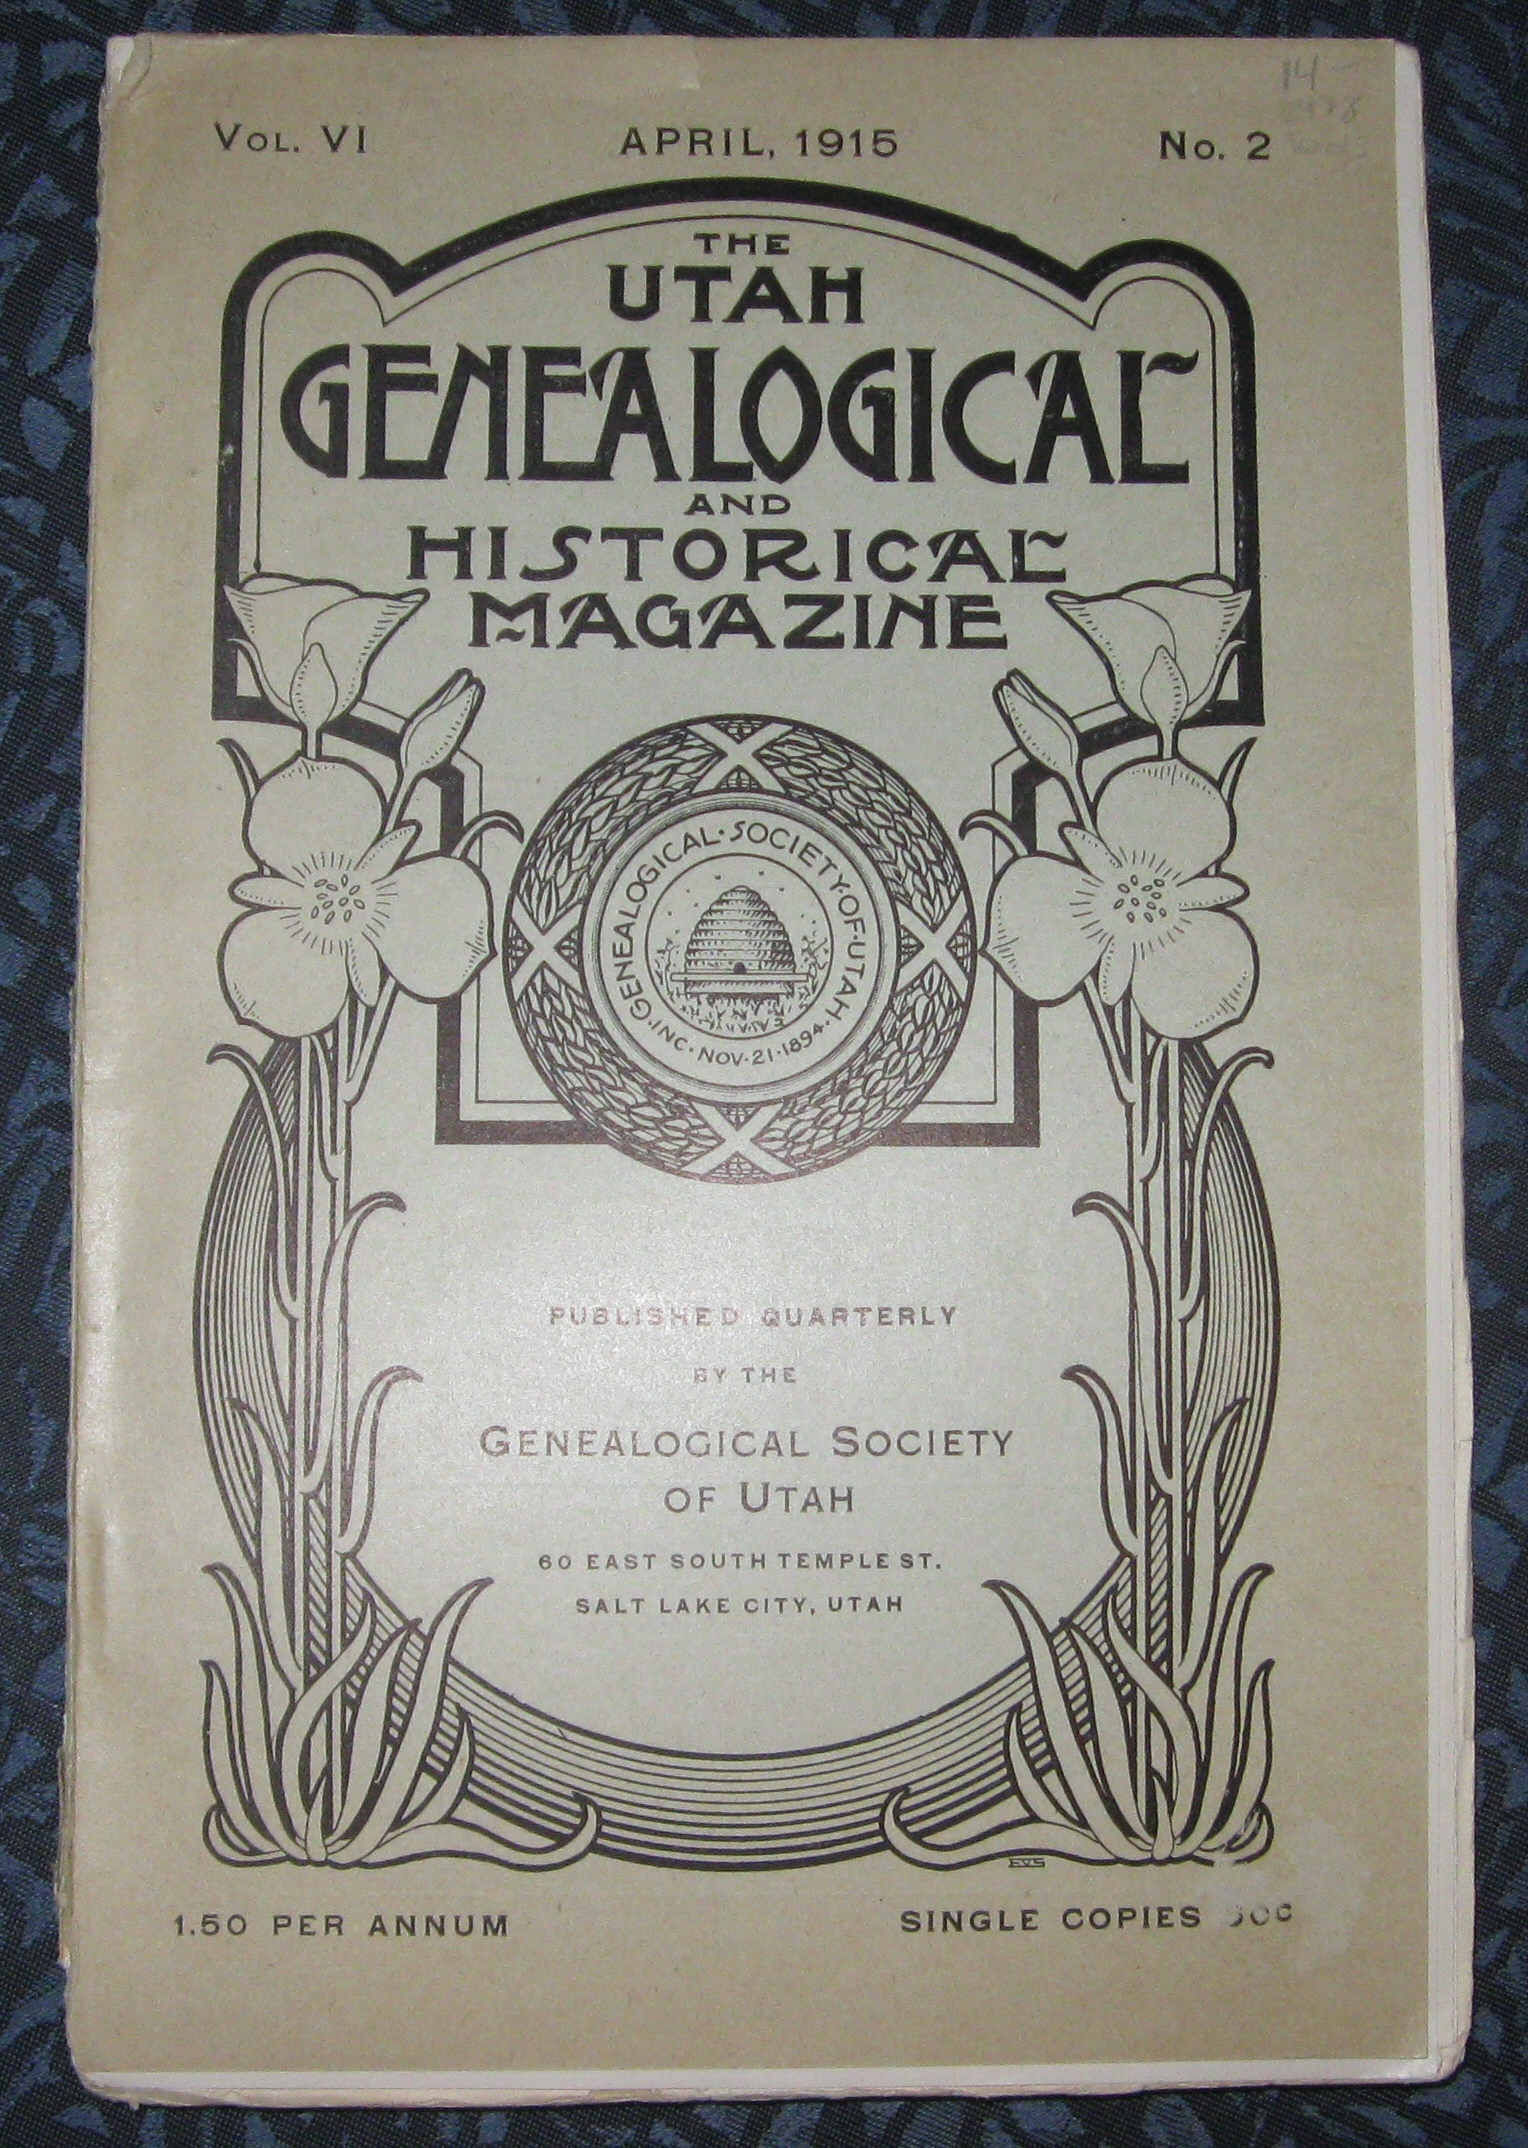 The Utah Genealogical and Historical Magazine Vol. VI April, 1915 No. 2 -, Genealogical Society Of Utah.